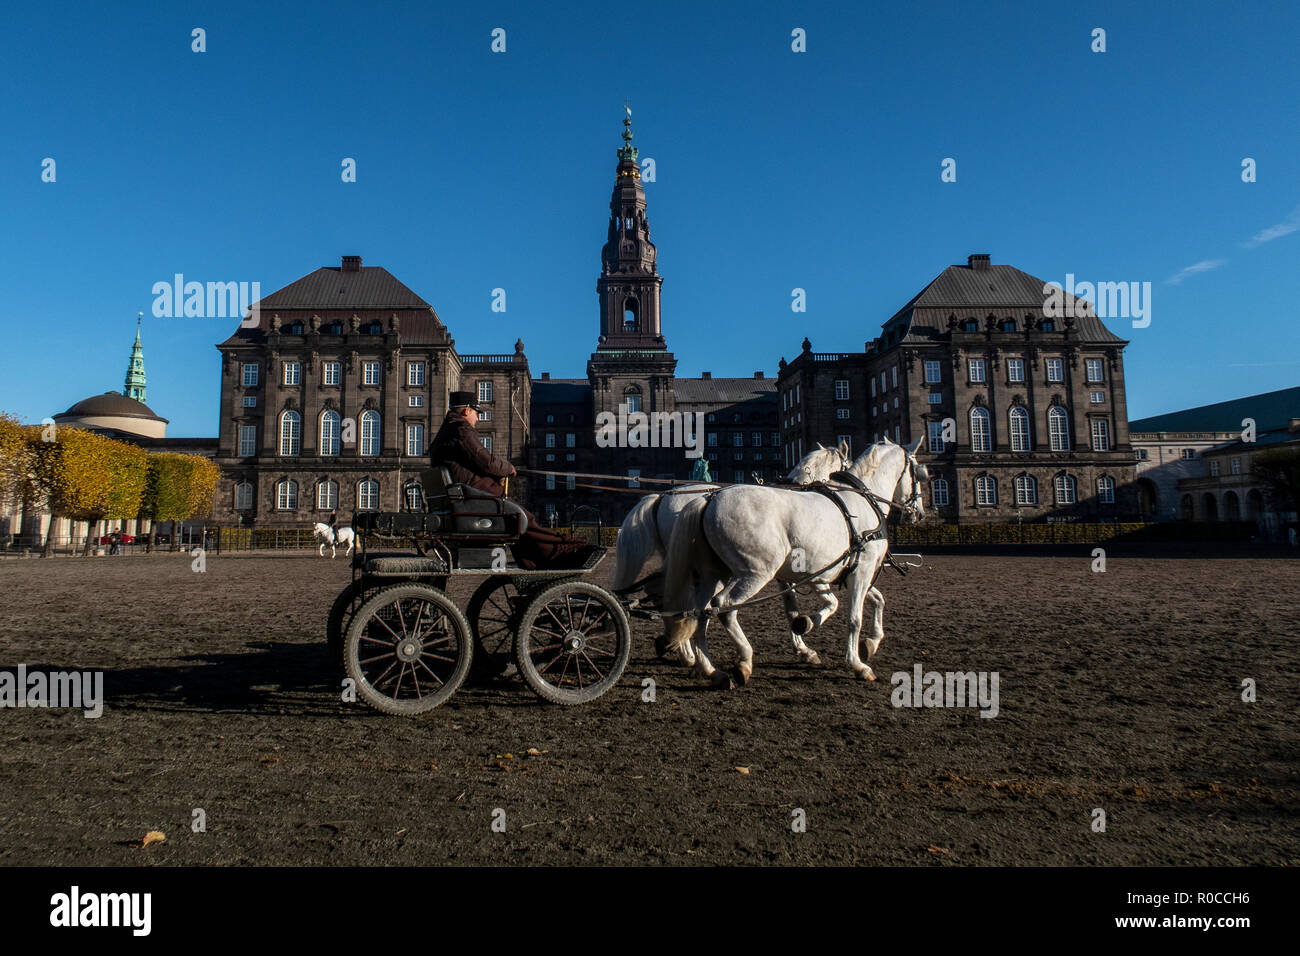 Horses from the Royal Stables on the parade ground of Christiansborg Palace in Copenhagen, Denmark, Danish parliament building. - Stock Image